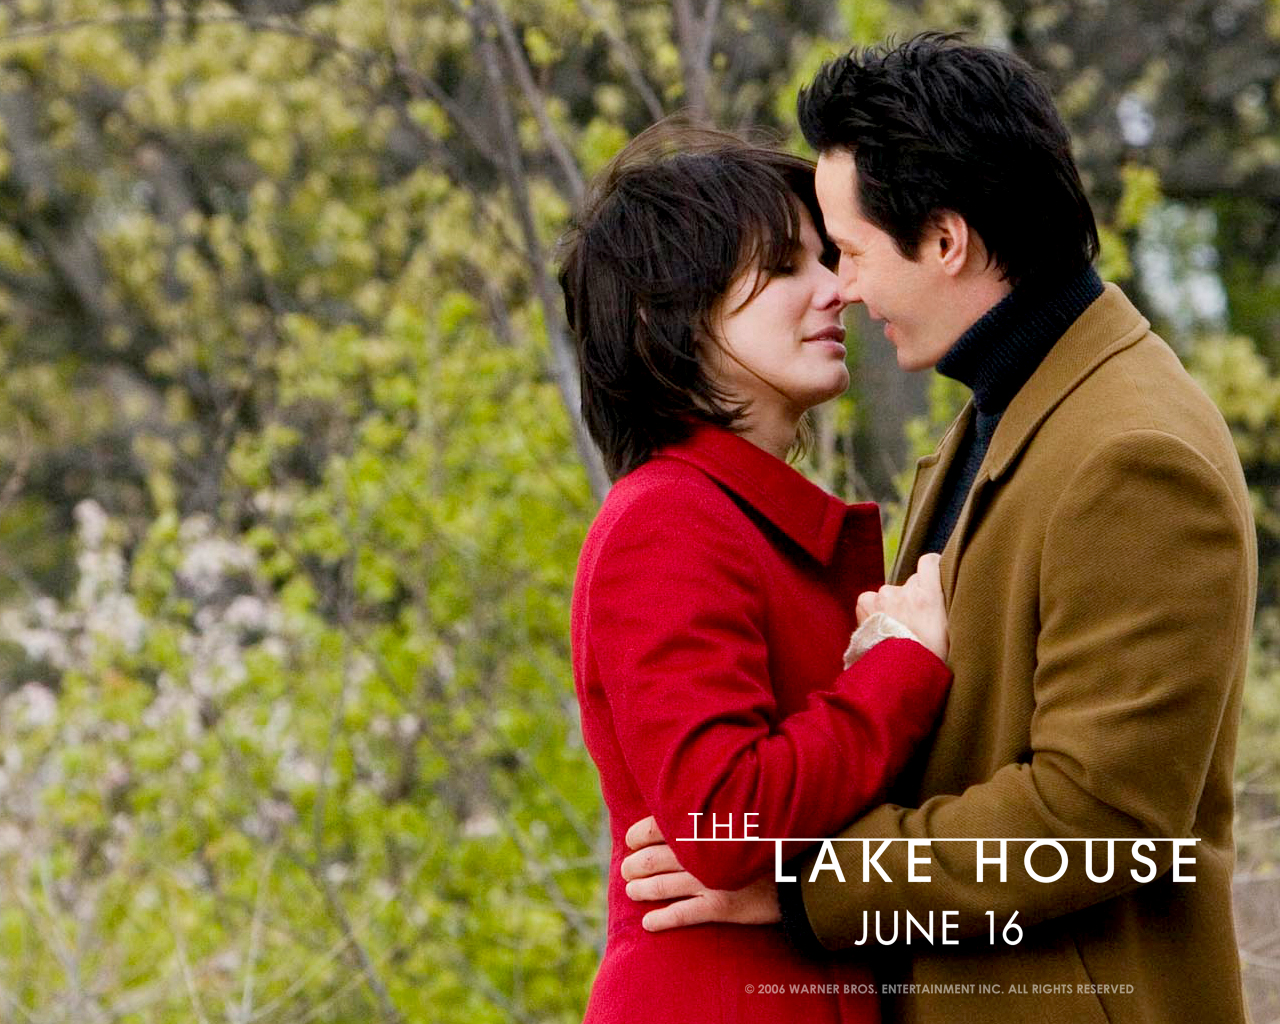 http://2.bp.blogspot.com/_KjoS7aW4kY8/TQPlcMukDYI/AAAAAAAAAAo/3buPFz66JbU/s1600/Sandra_Bullock_in_The_Lake_House_Wallpaper_4_1280.jpg